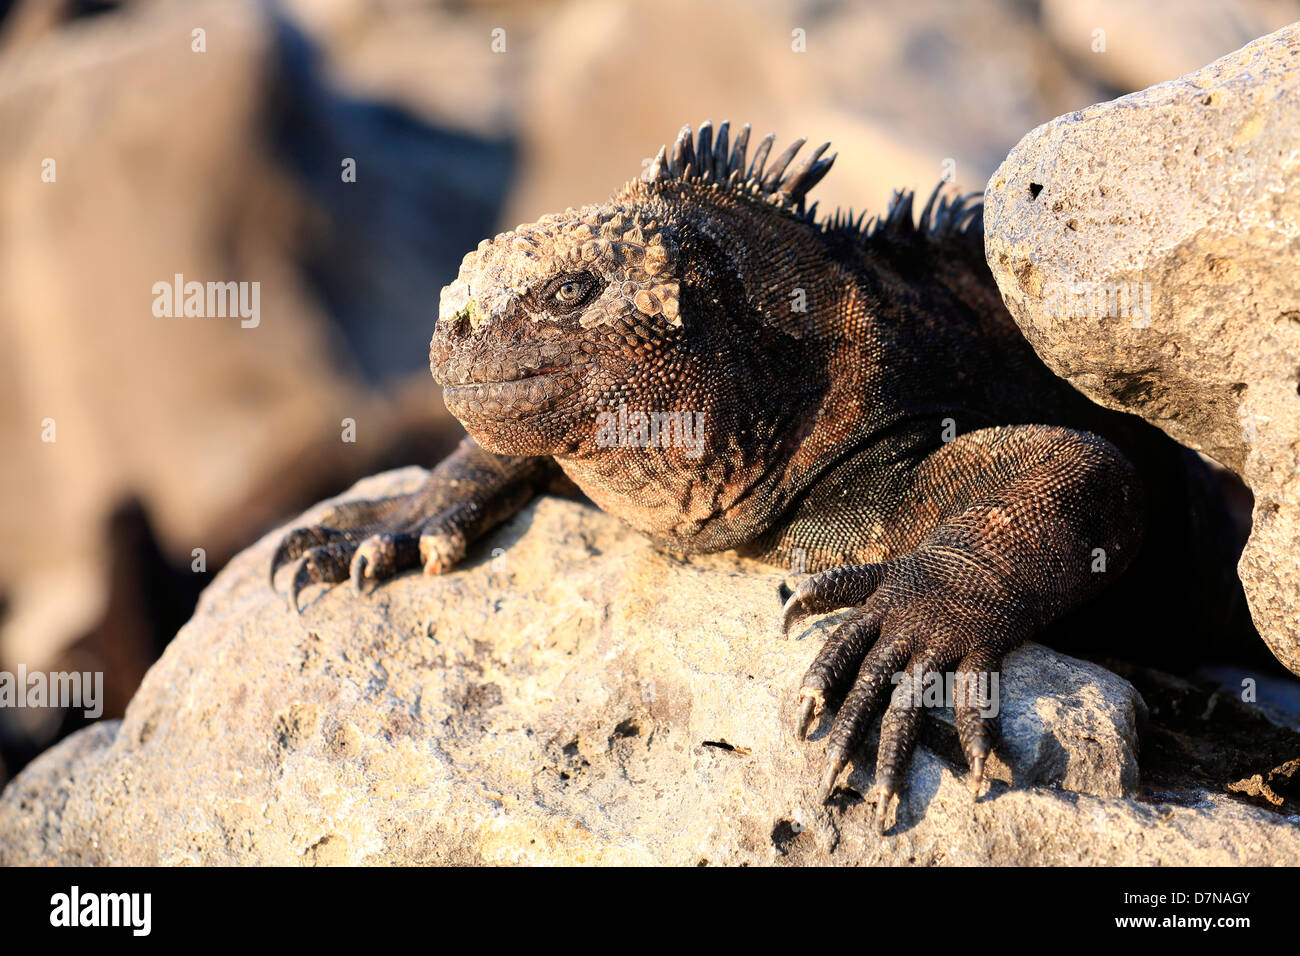 Marine iguana sunbathing on volcanic rock, Galapagos Islands - Stock Image